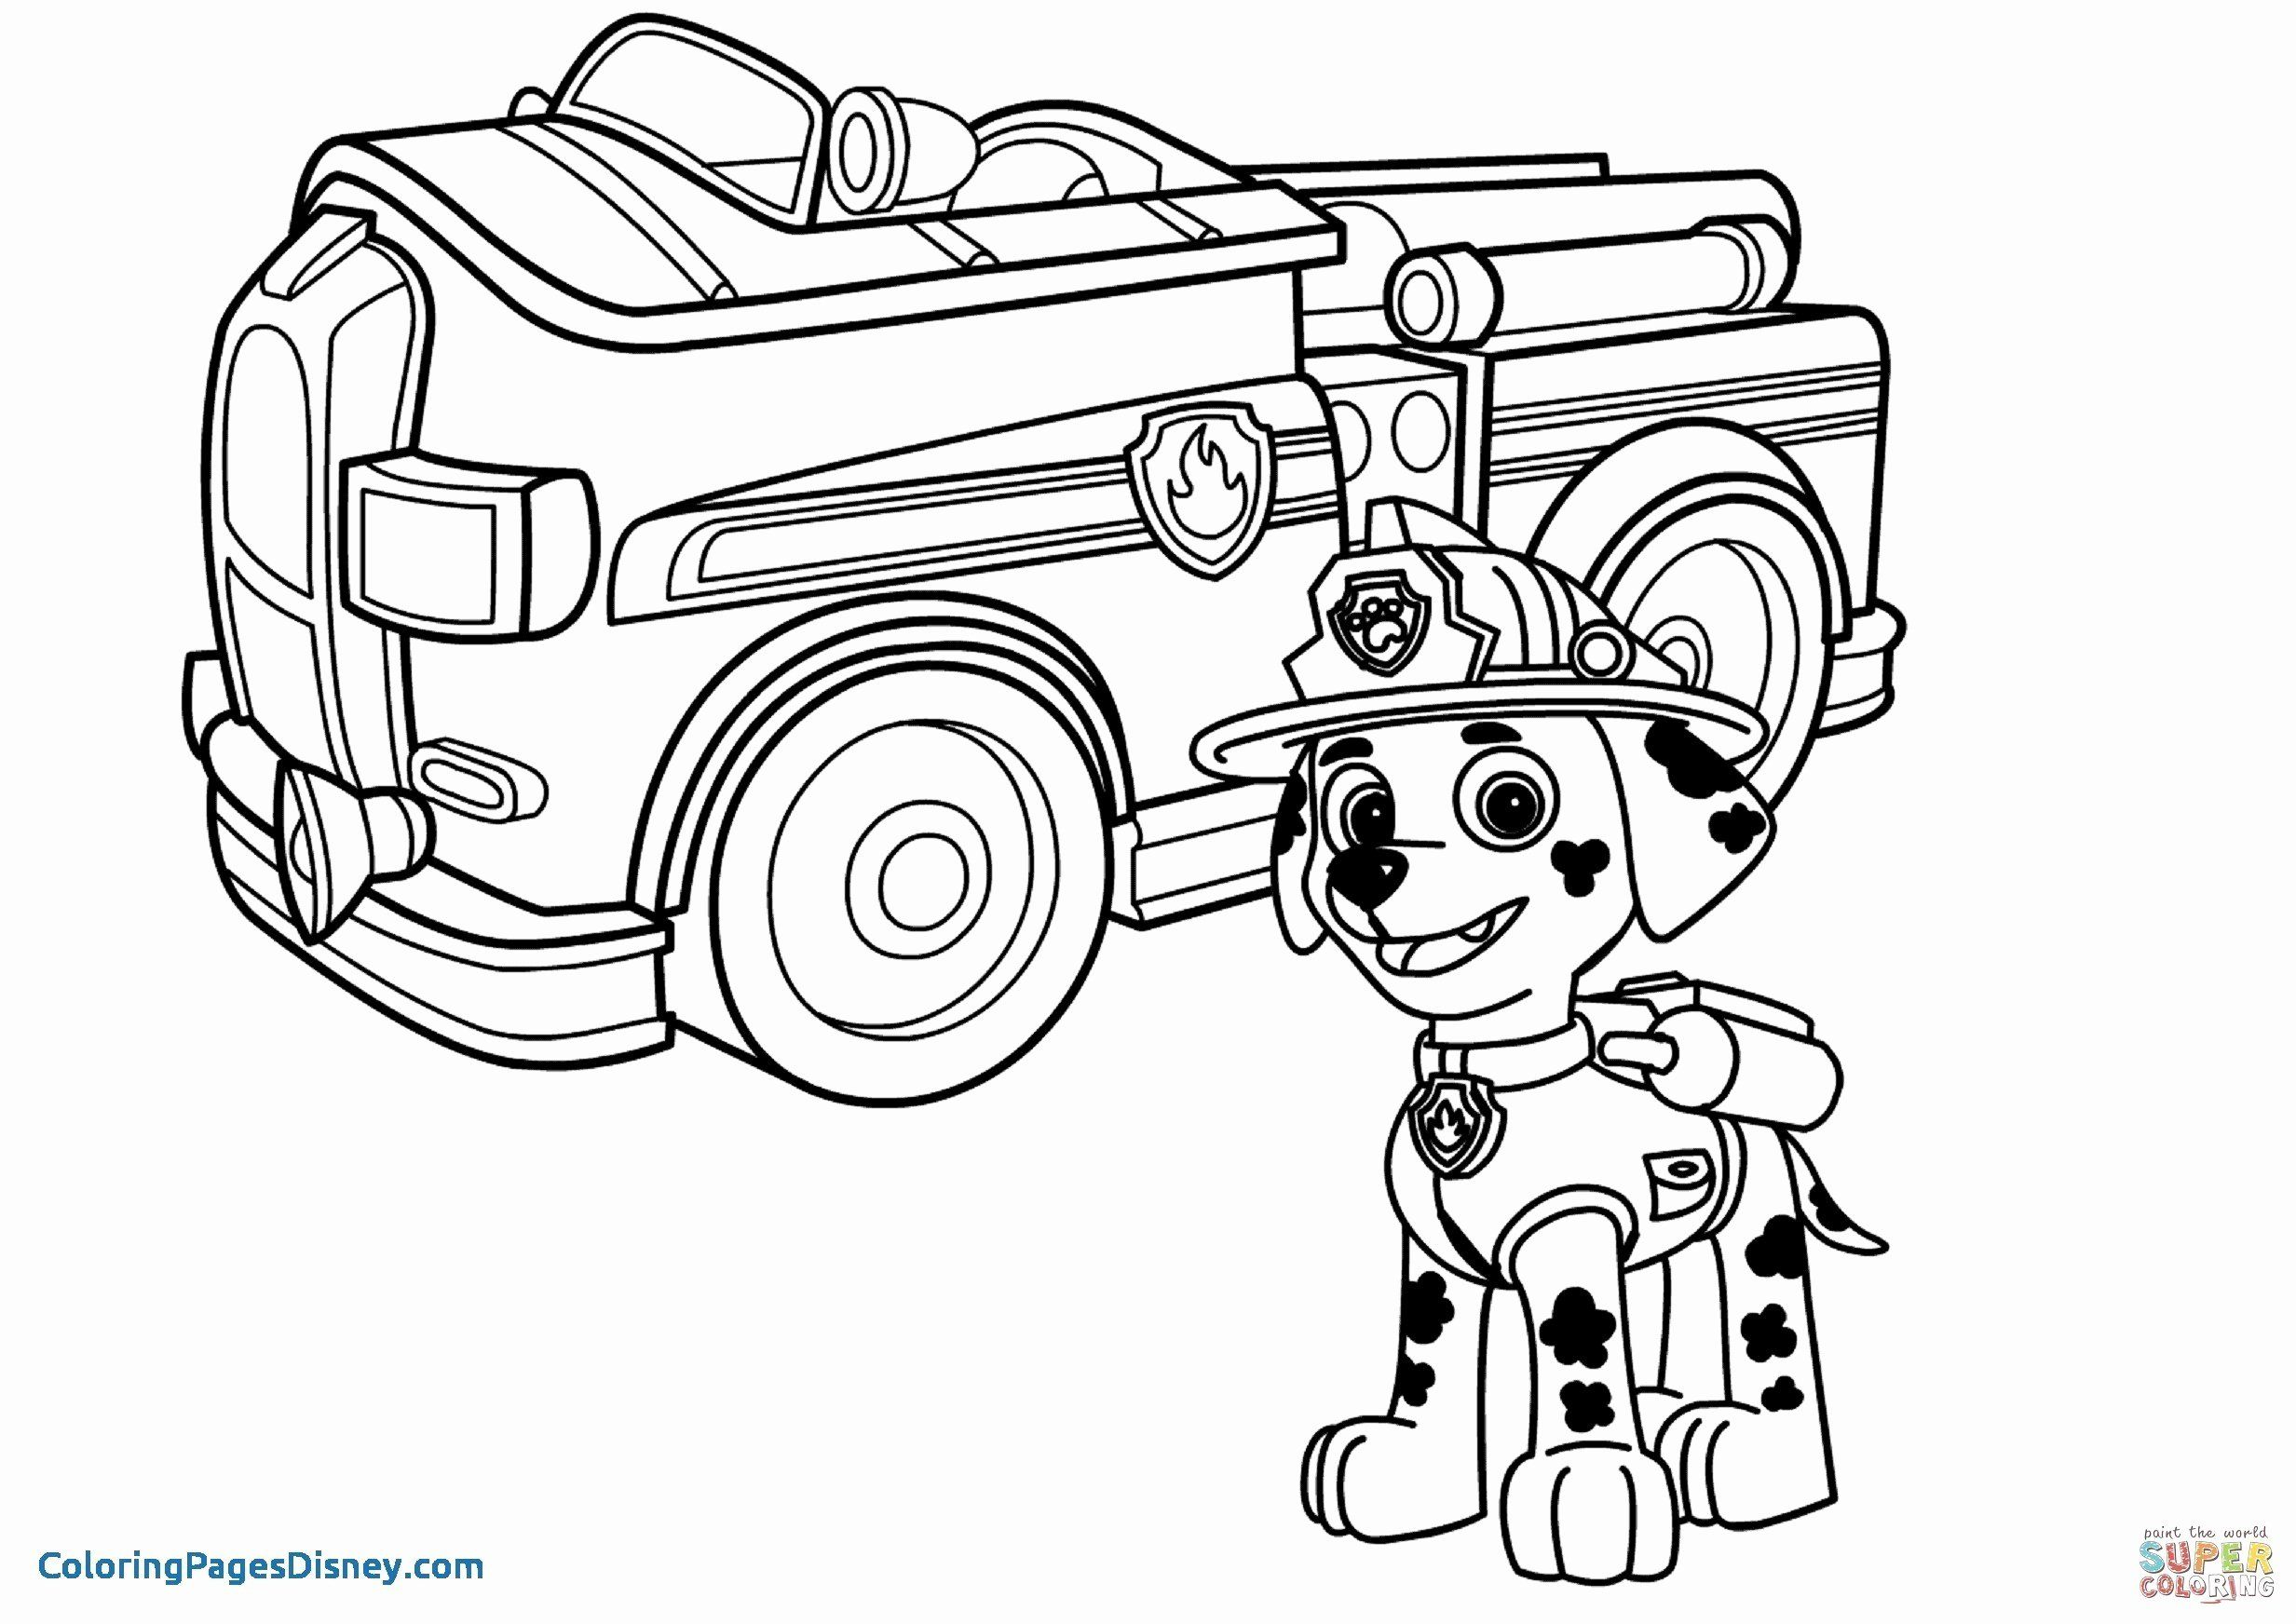 Fire Truck Coloring Pages Pdf Elegant Fire Truck Coloring Paw Patrol Coloring Paw Patrol Coloring Pages Monster Truck Coloring Pages